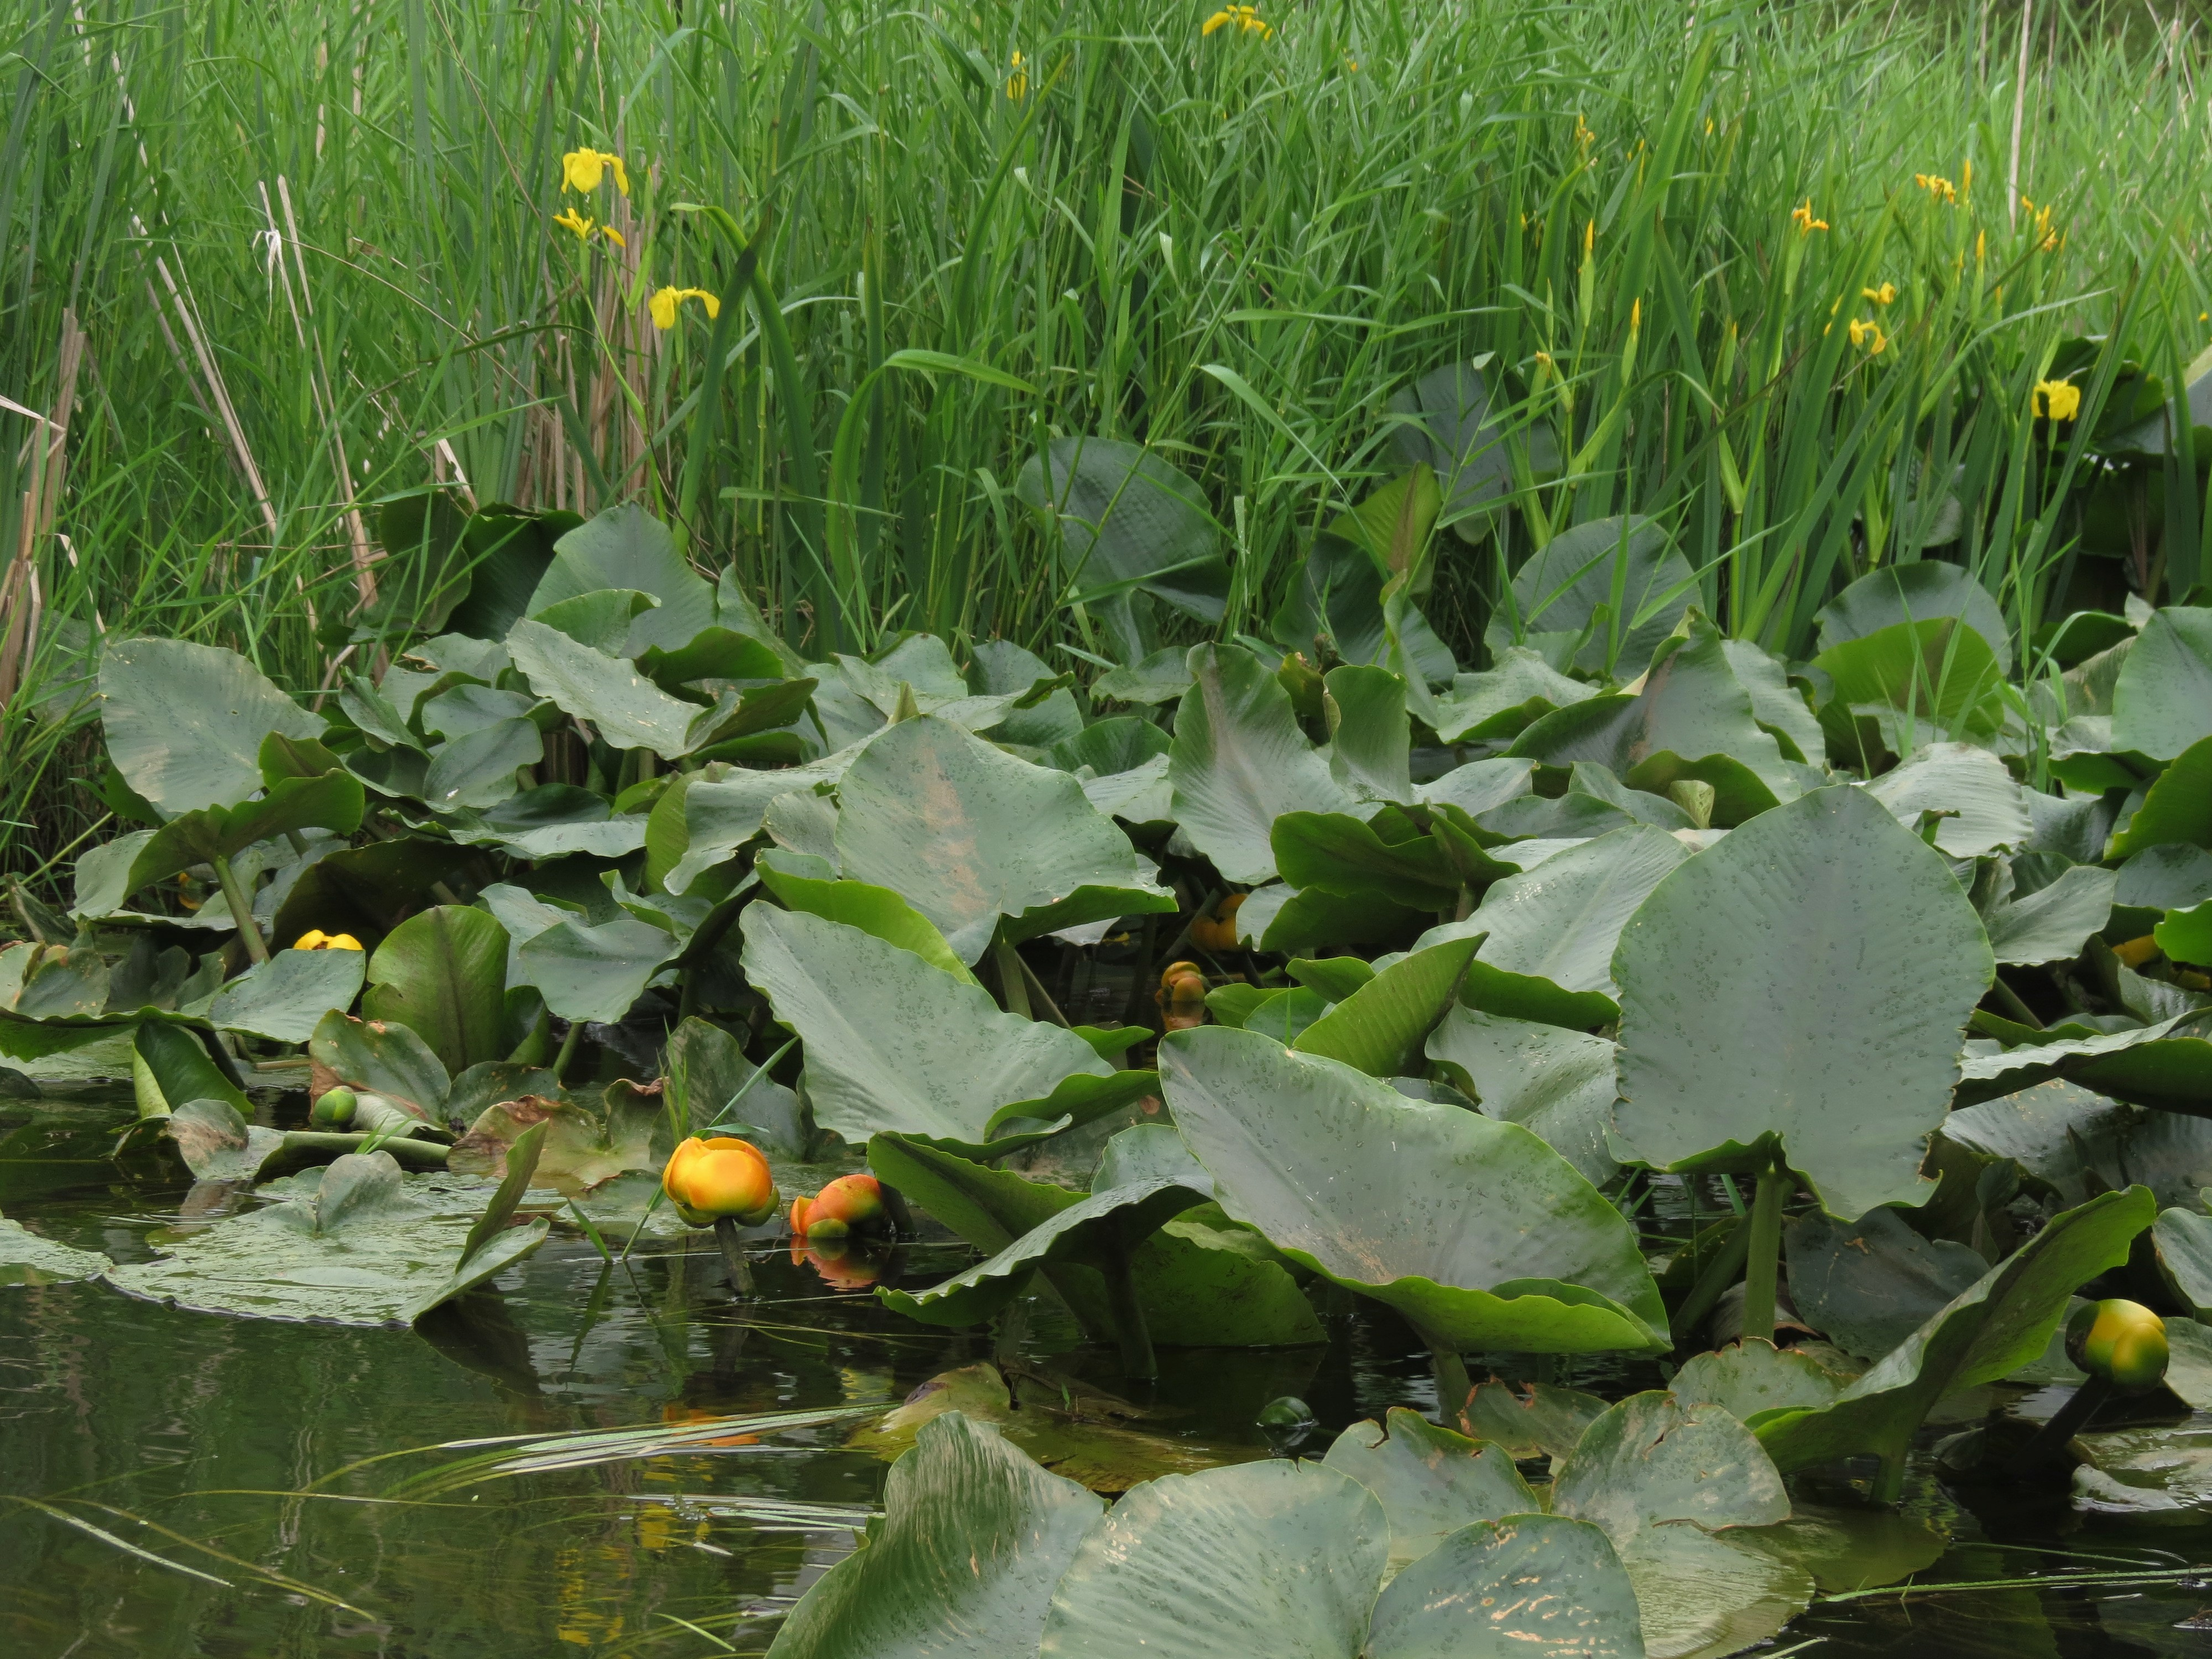 Waterlilies blooming in the spring at Big Lake Wetlands Conservation Area. Photograph credit: Skagit Land Trust staff.